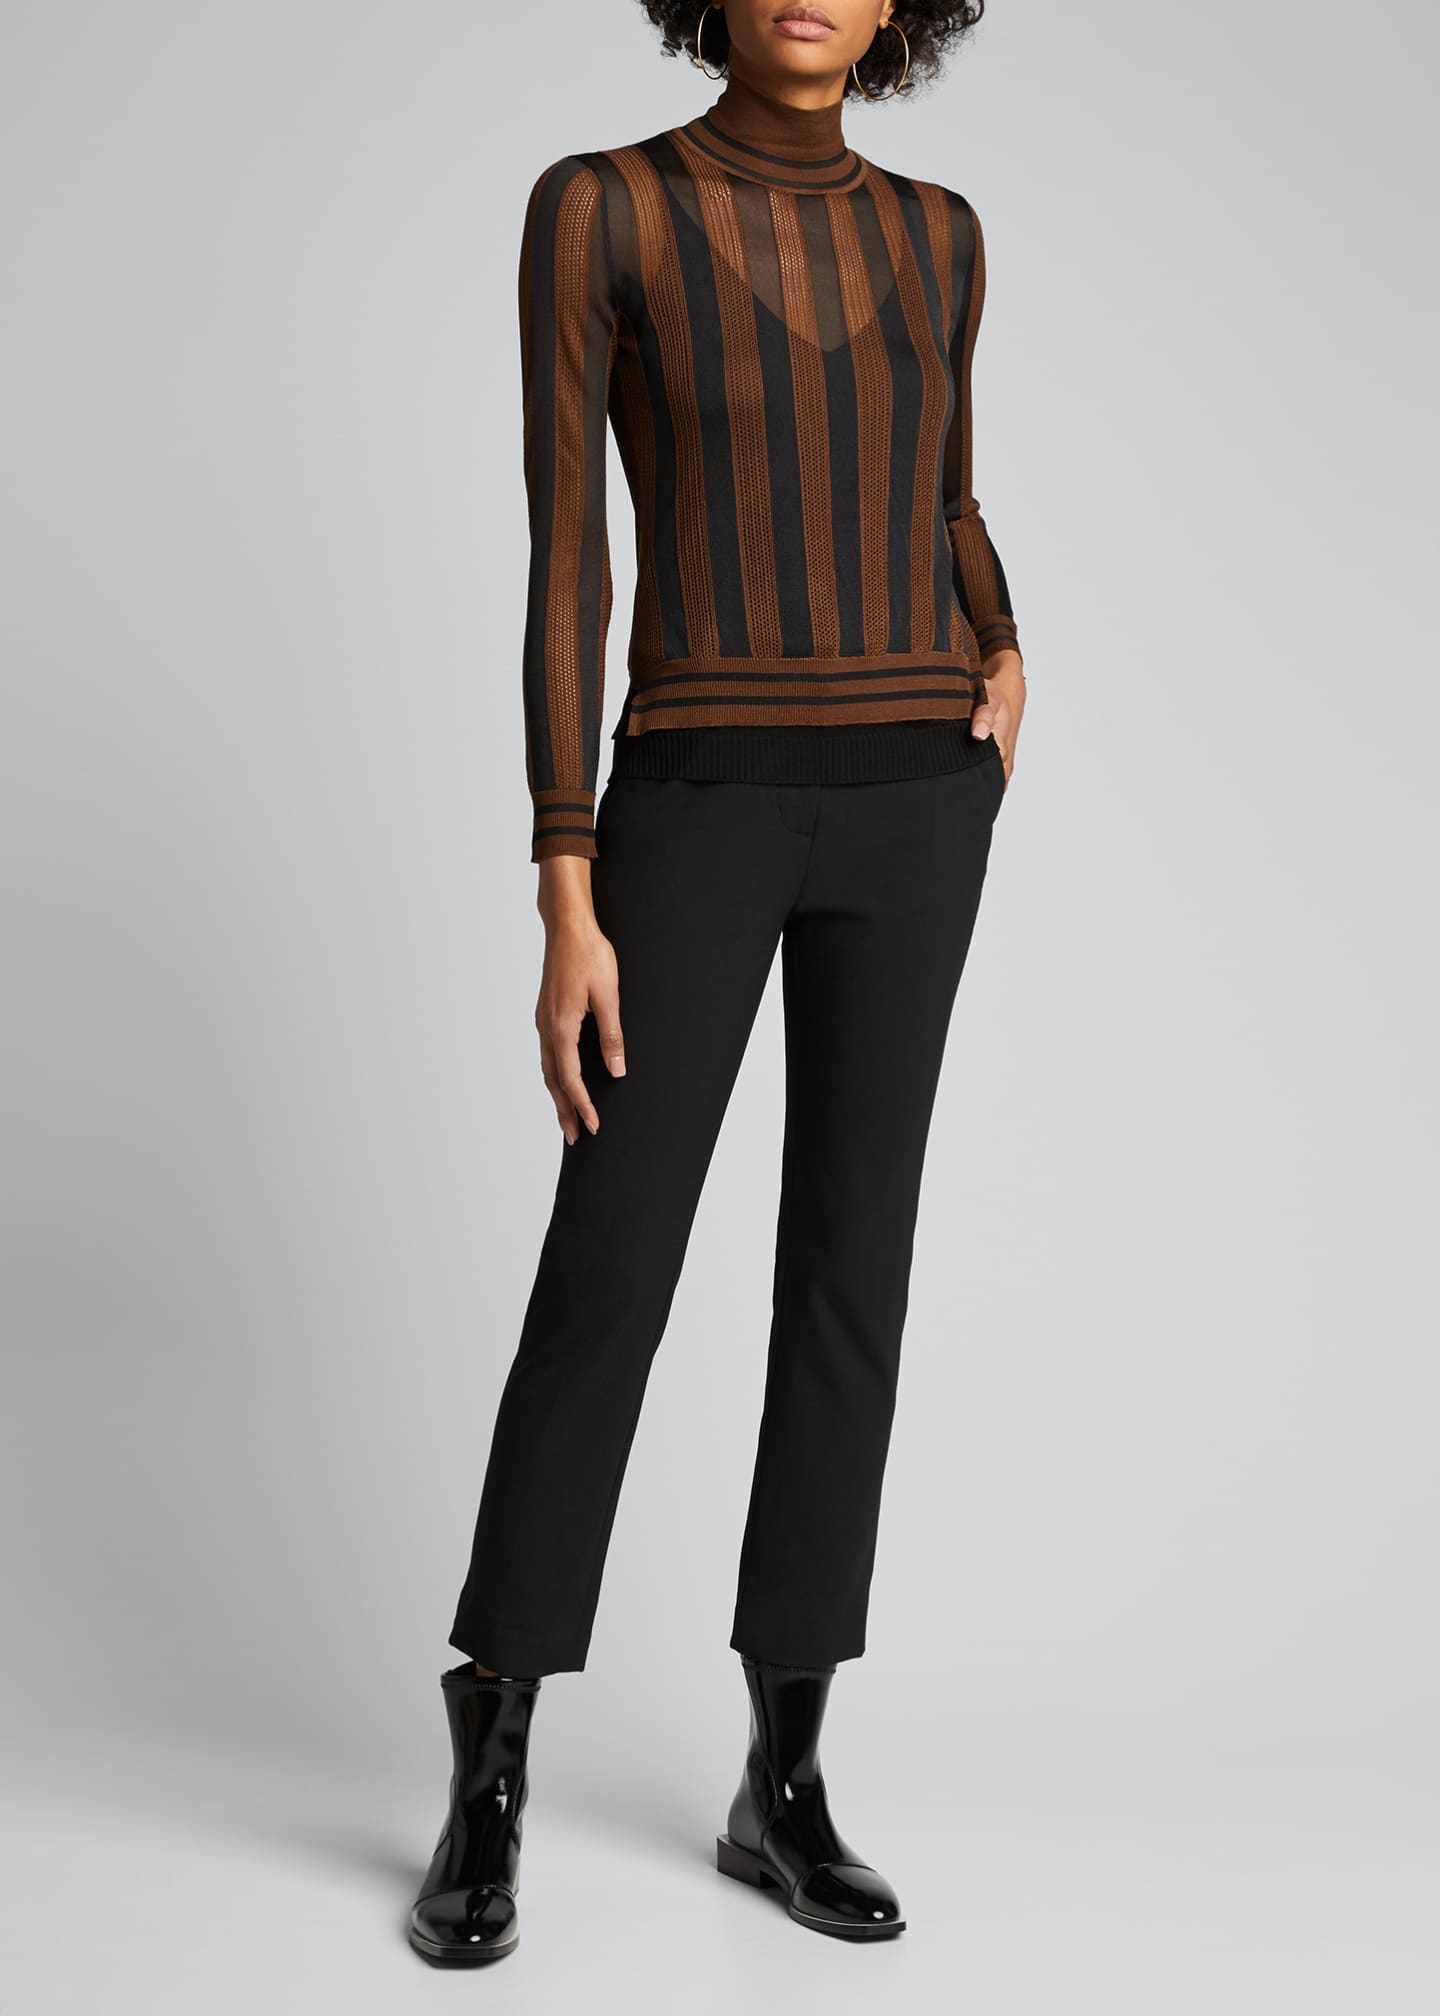 Image 1 of 5: Silk Semisheer Striped Turtleneck Sweater